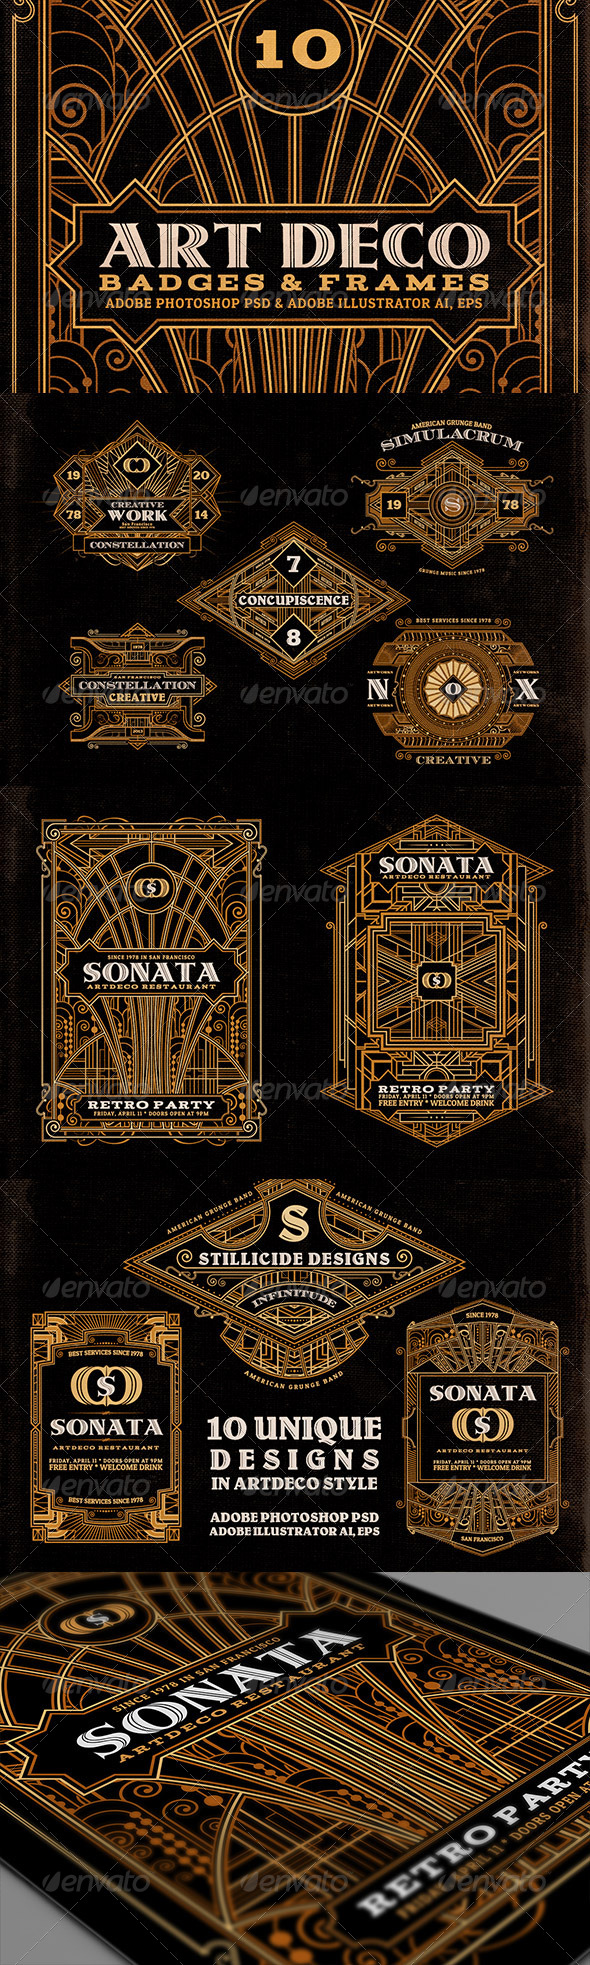 GraphicRiver ArtDeco Badges & Frames 7416724